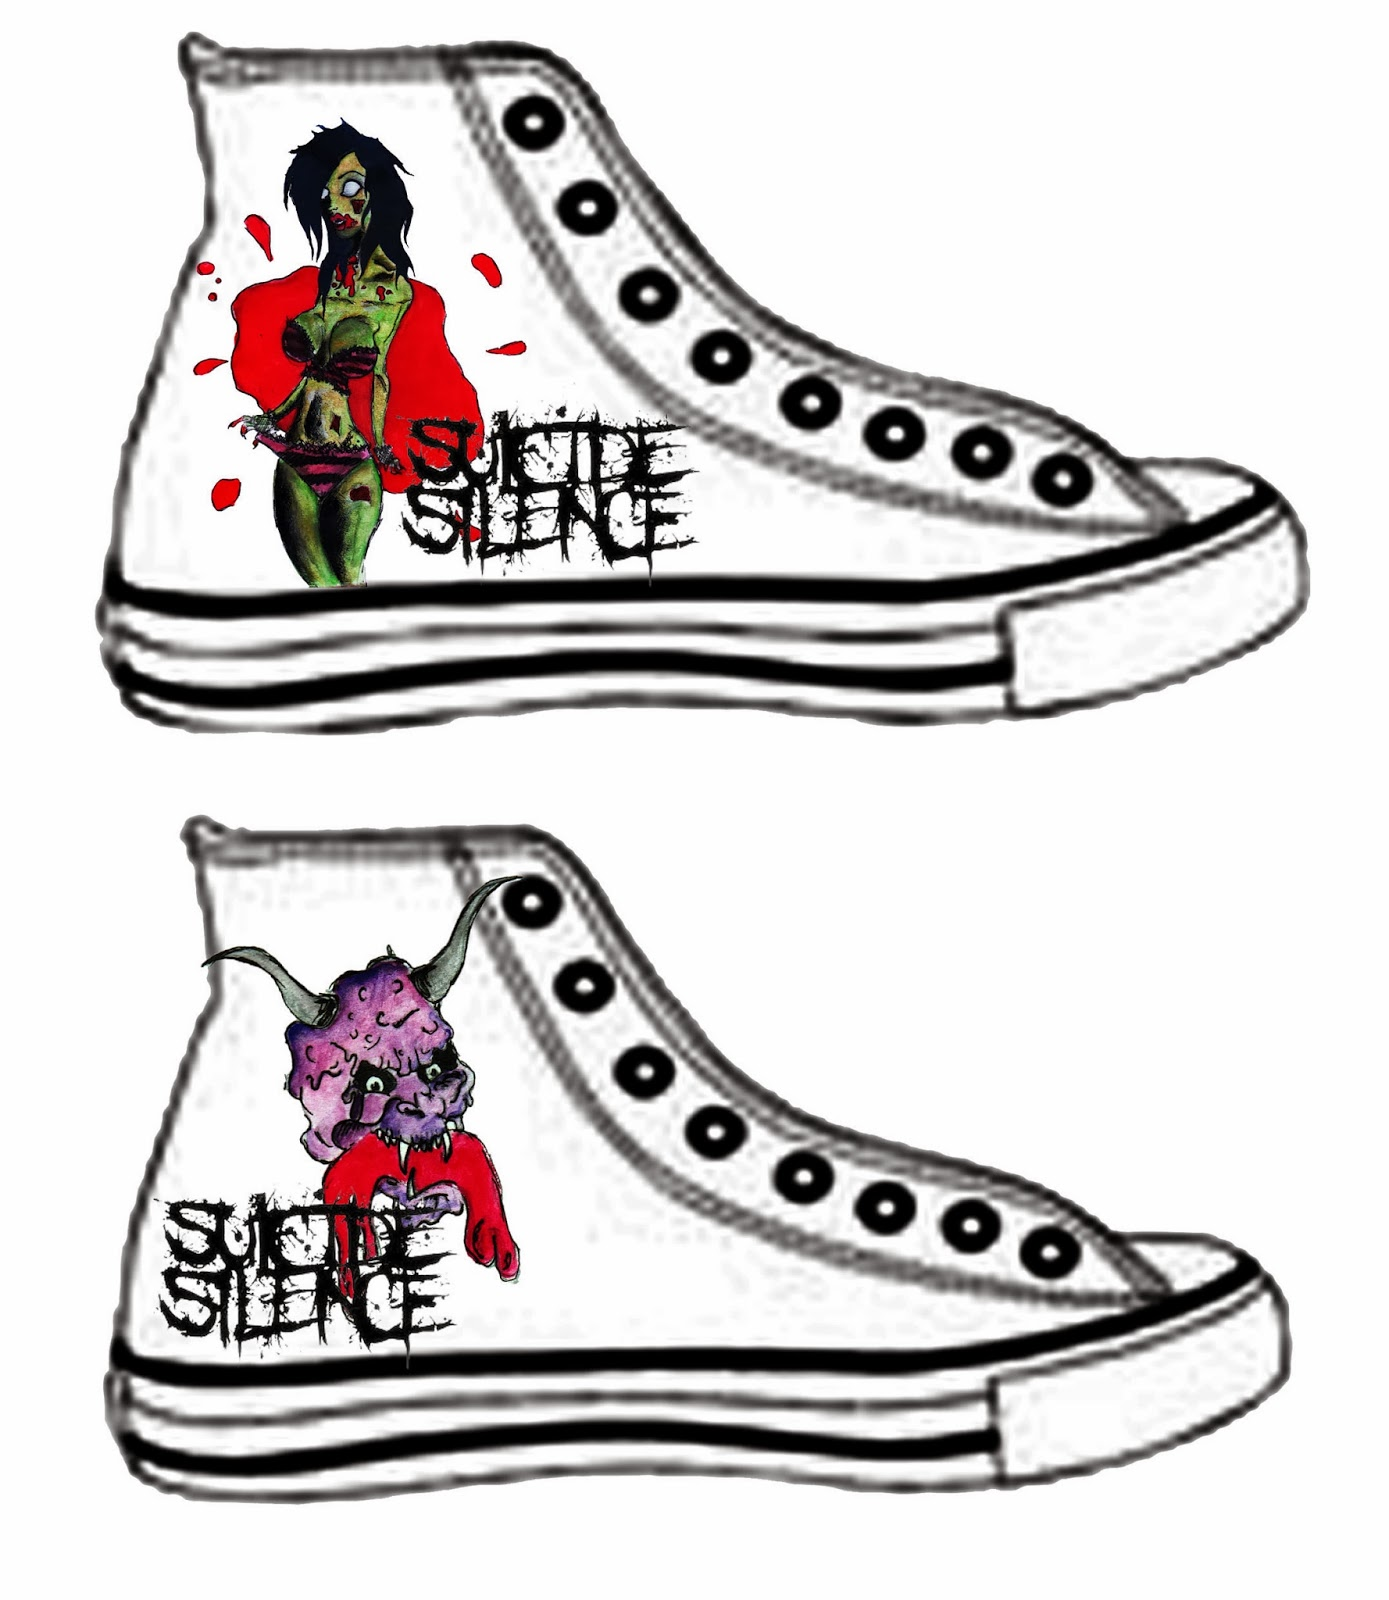 my work more of zombie tramp and college 39 s work suicide silence converse design. Black Bedroom Furniture Sets. Home Design Ideas